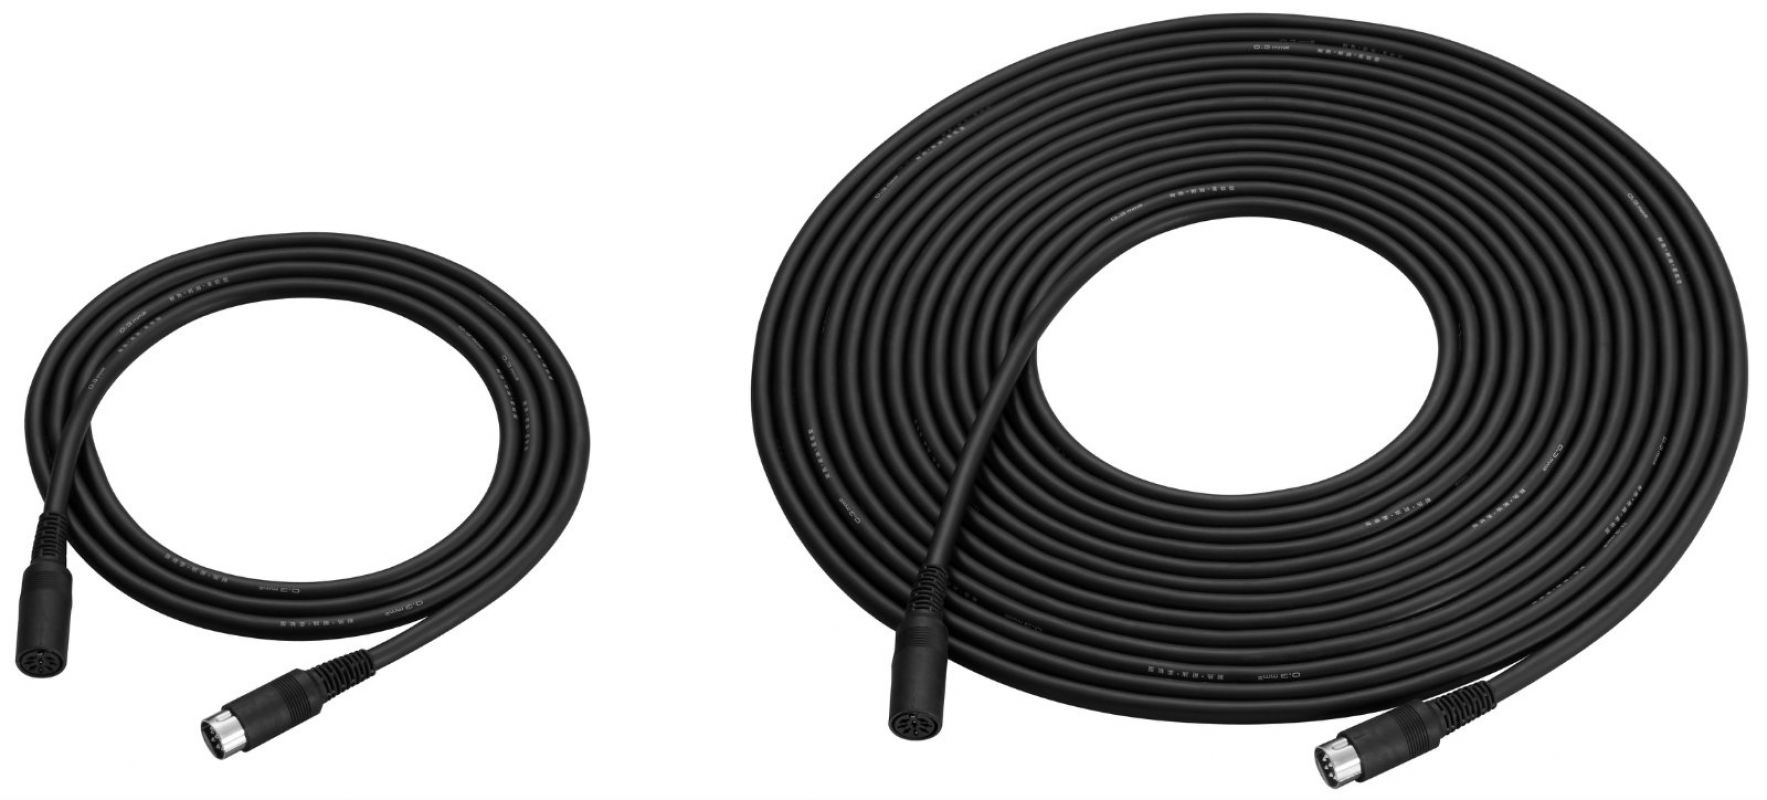 YR-770-10M Extension Cord TS-770 Series Wired Conference System TOA Conference System Penang, Malaysia, Butterworth Distributor, Supplier, Supply, Supplies | Perniagaan Elektronik Guan Seng Hing